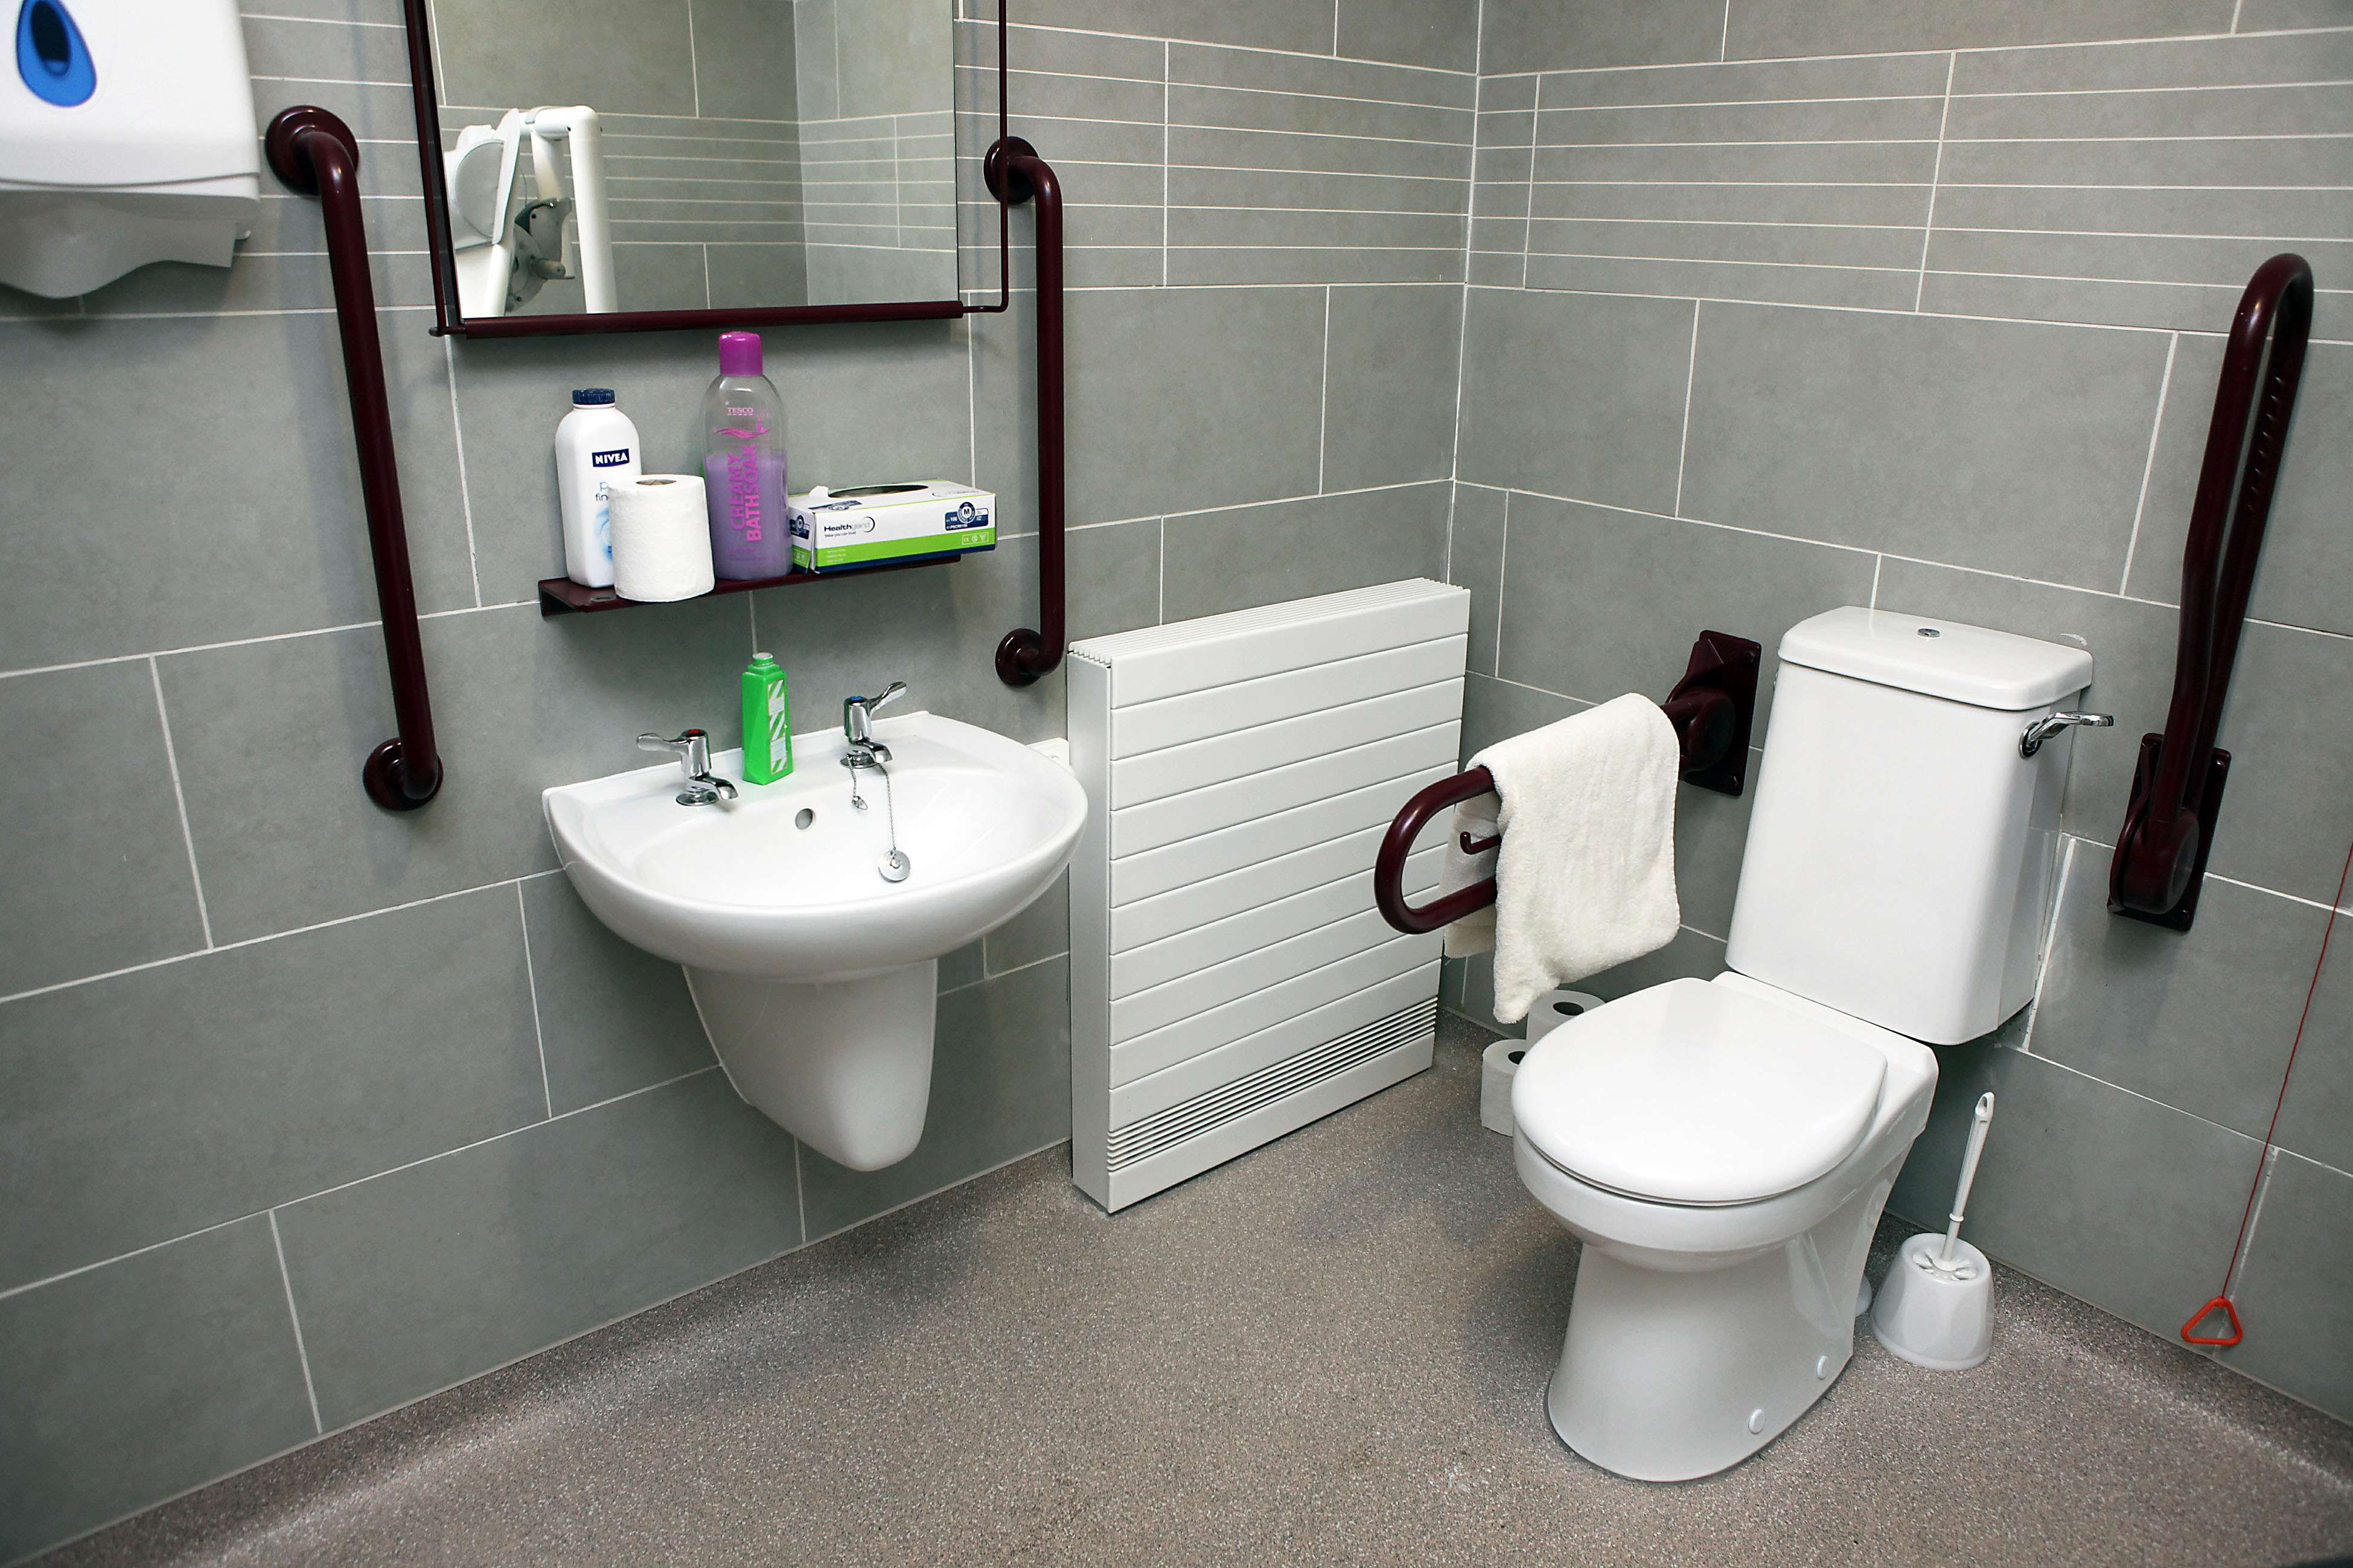 A bathroom adaption with handrails at Tithebarn Residential Home, Great Crosby.